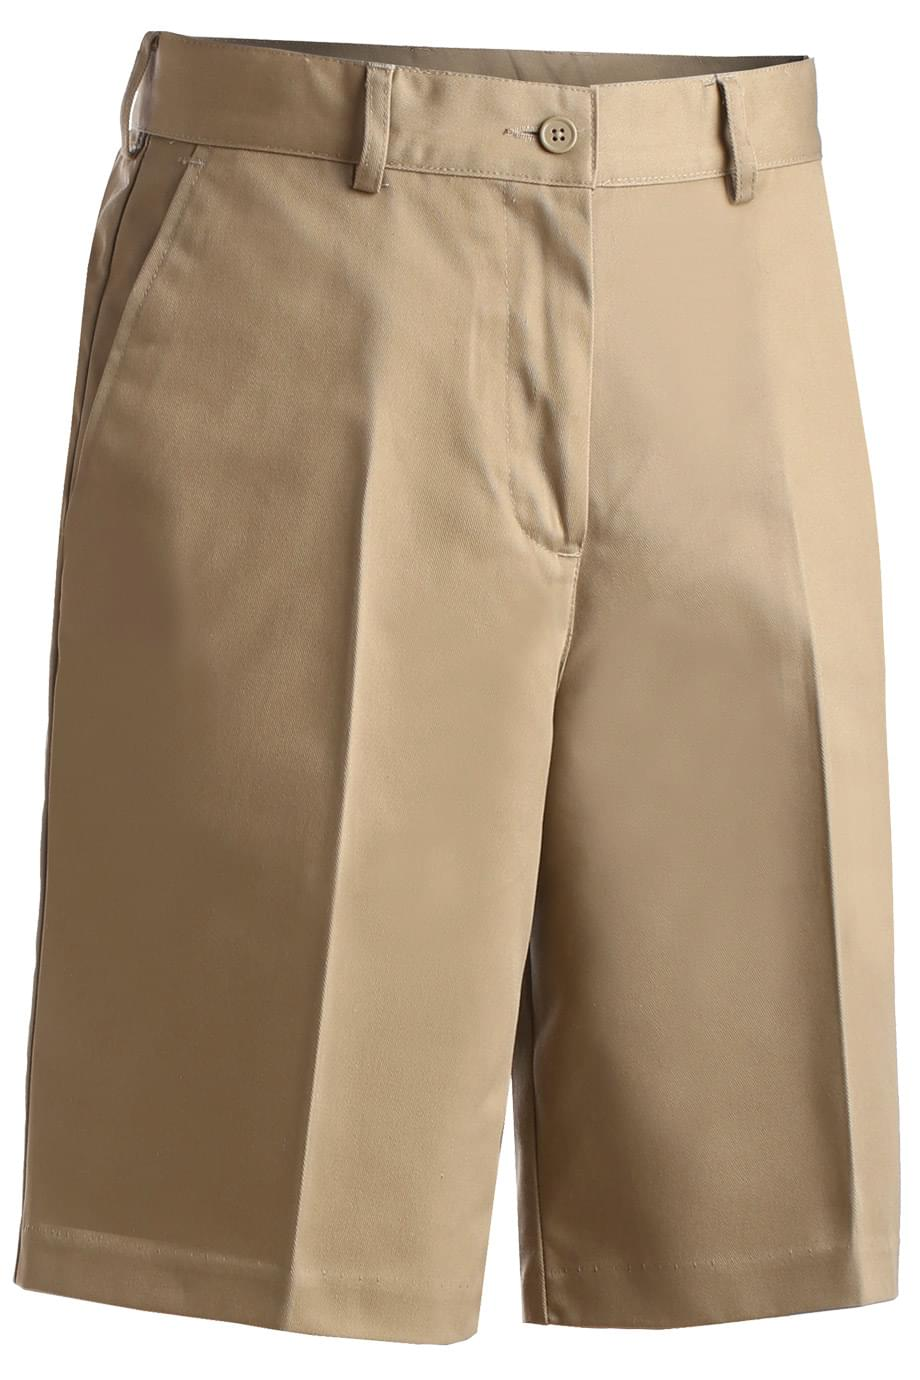 LADIES' UTILITY FLAT FRONT CHINO SHORT